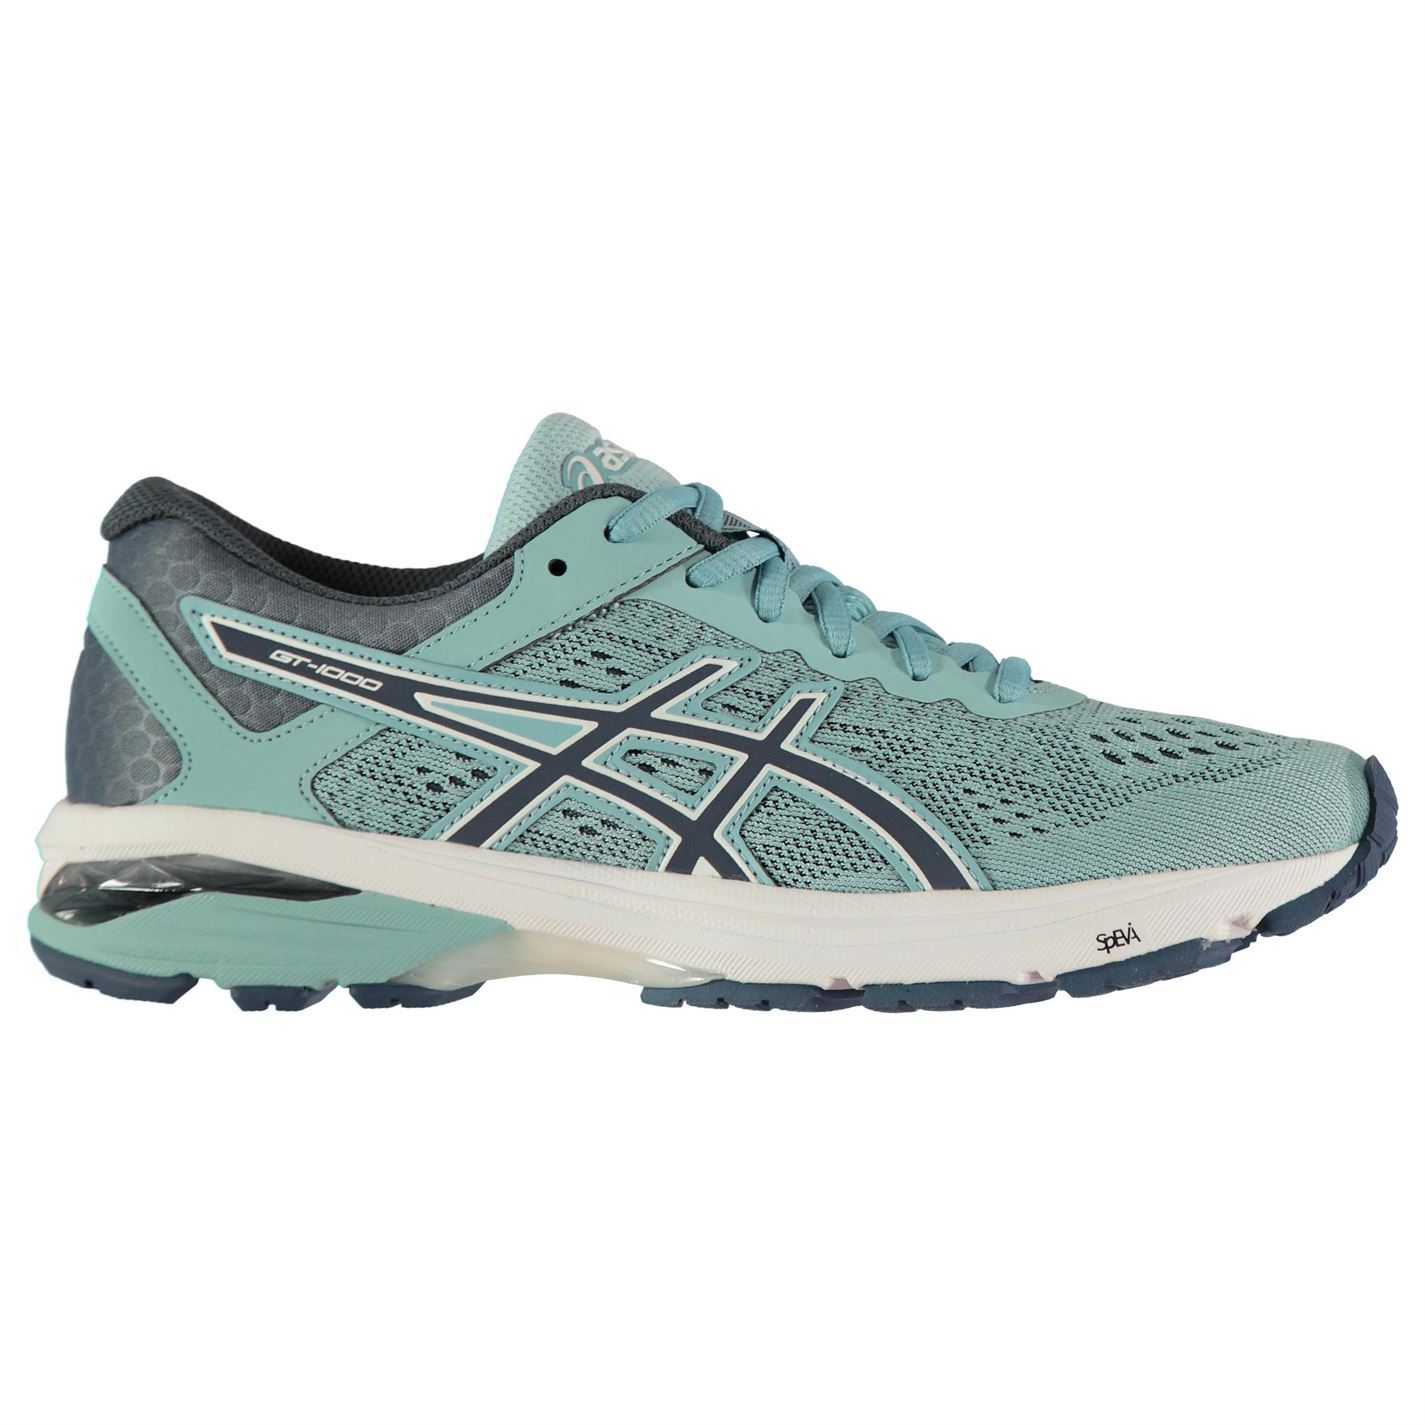 Asics Damenschuhe GT1000 6 Running Collar Schuhes Road Lace Up Breathable Padded Ankle Collar Running cada2c